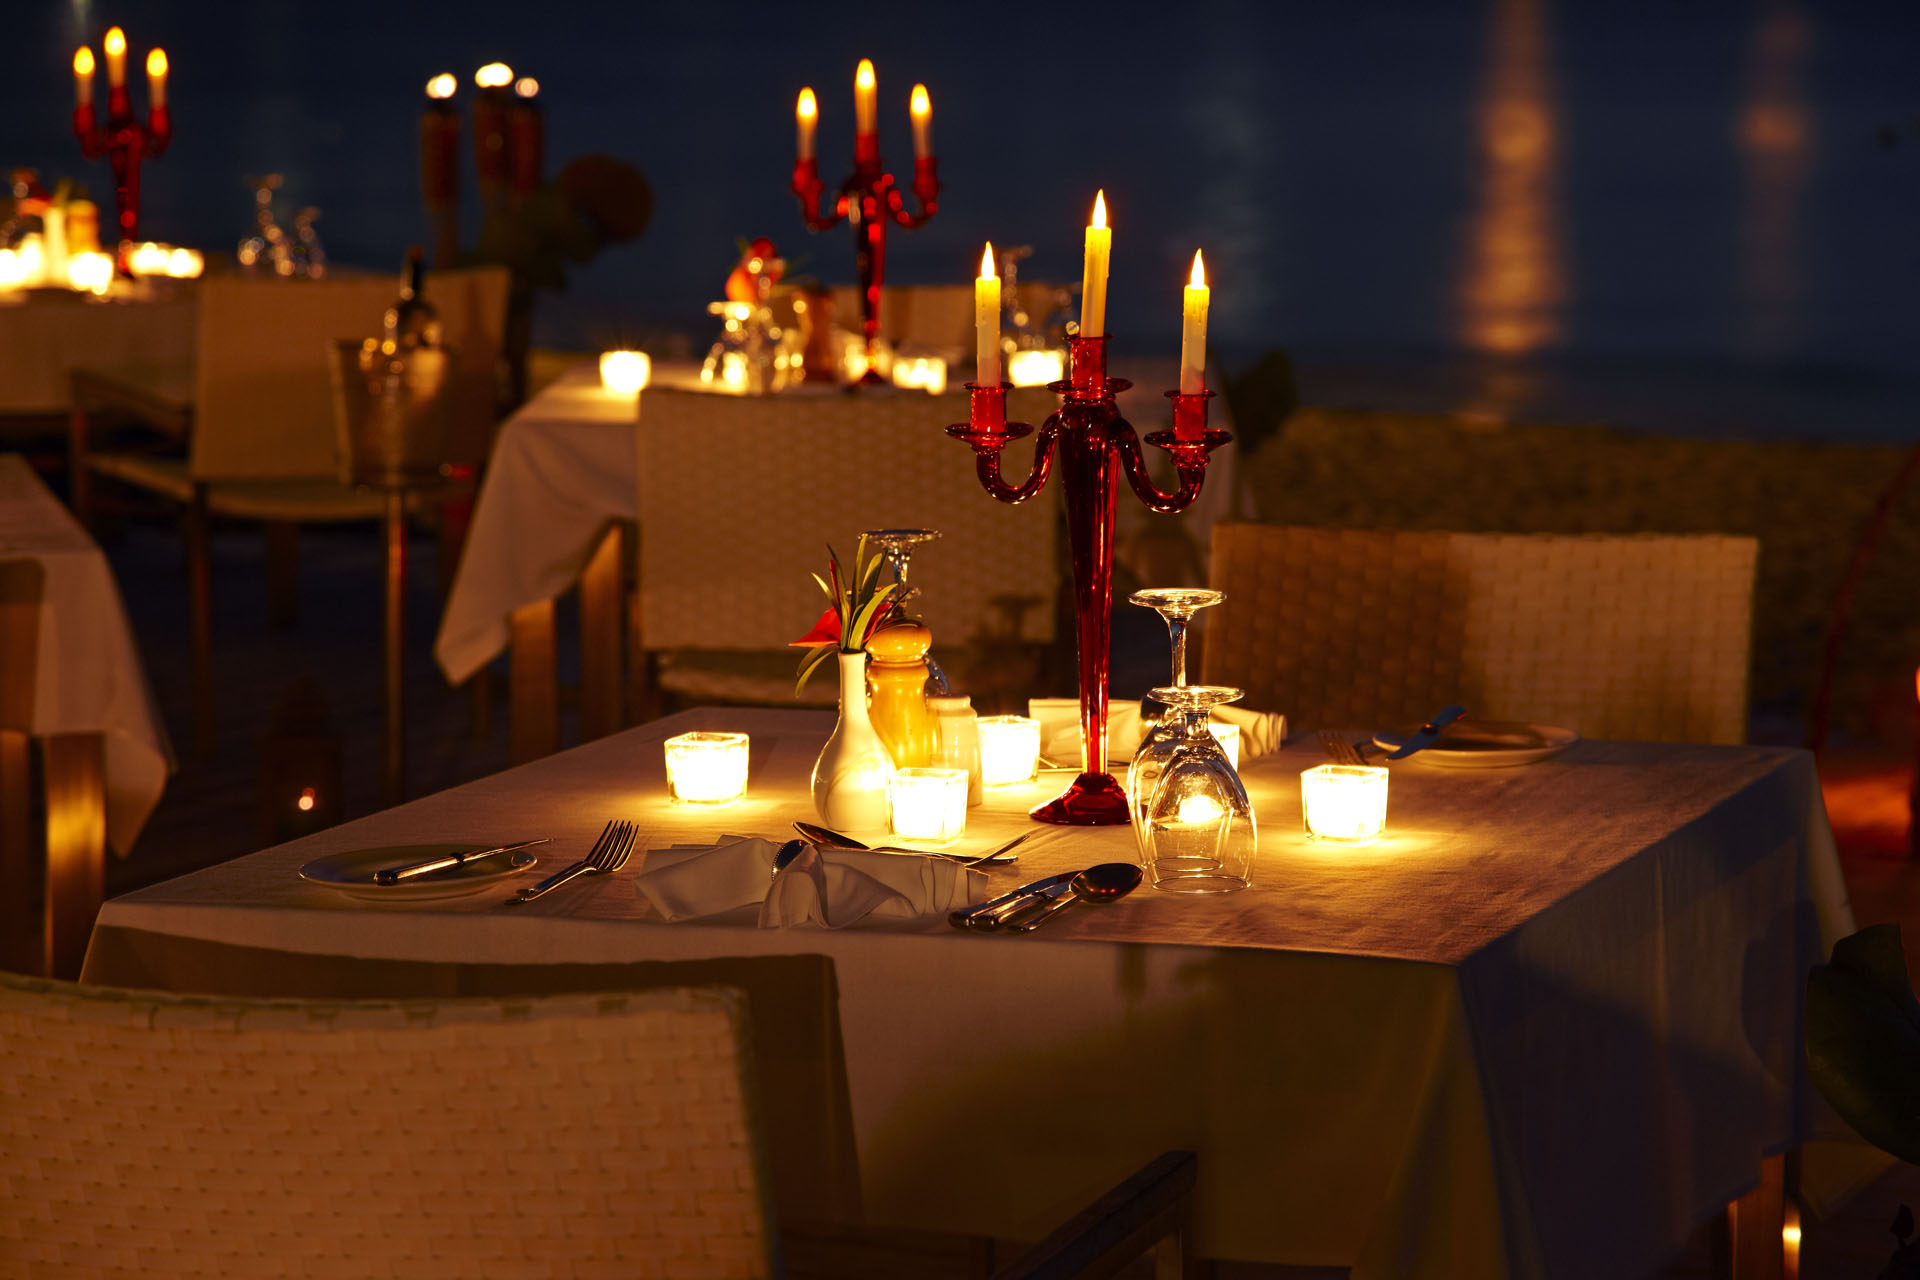 romantic dinner wallpapers high quality download free. Black Bedroom Furniture Sets. Home Design Ideas